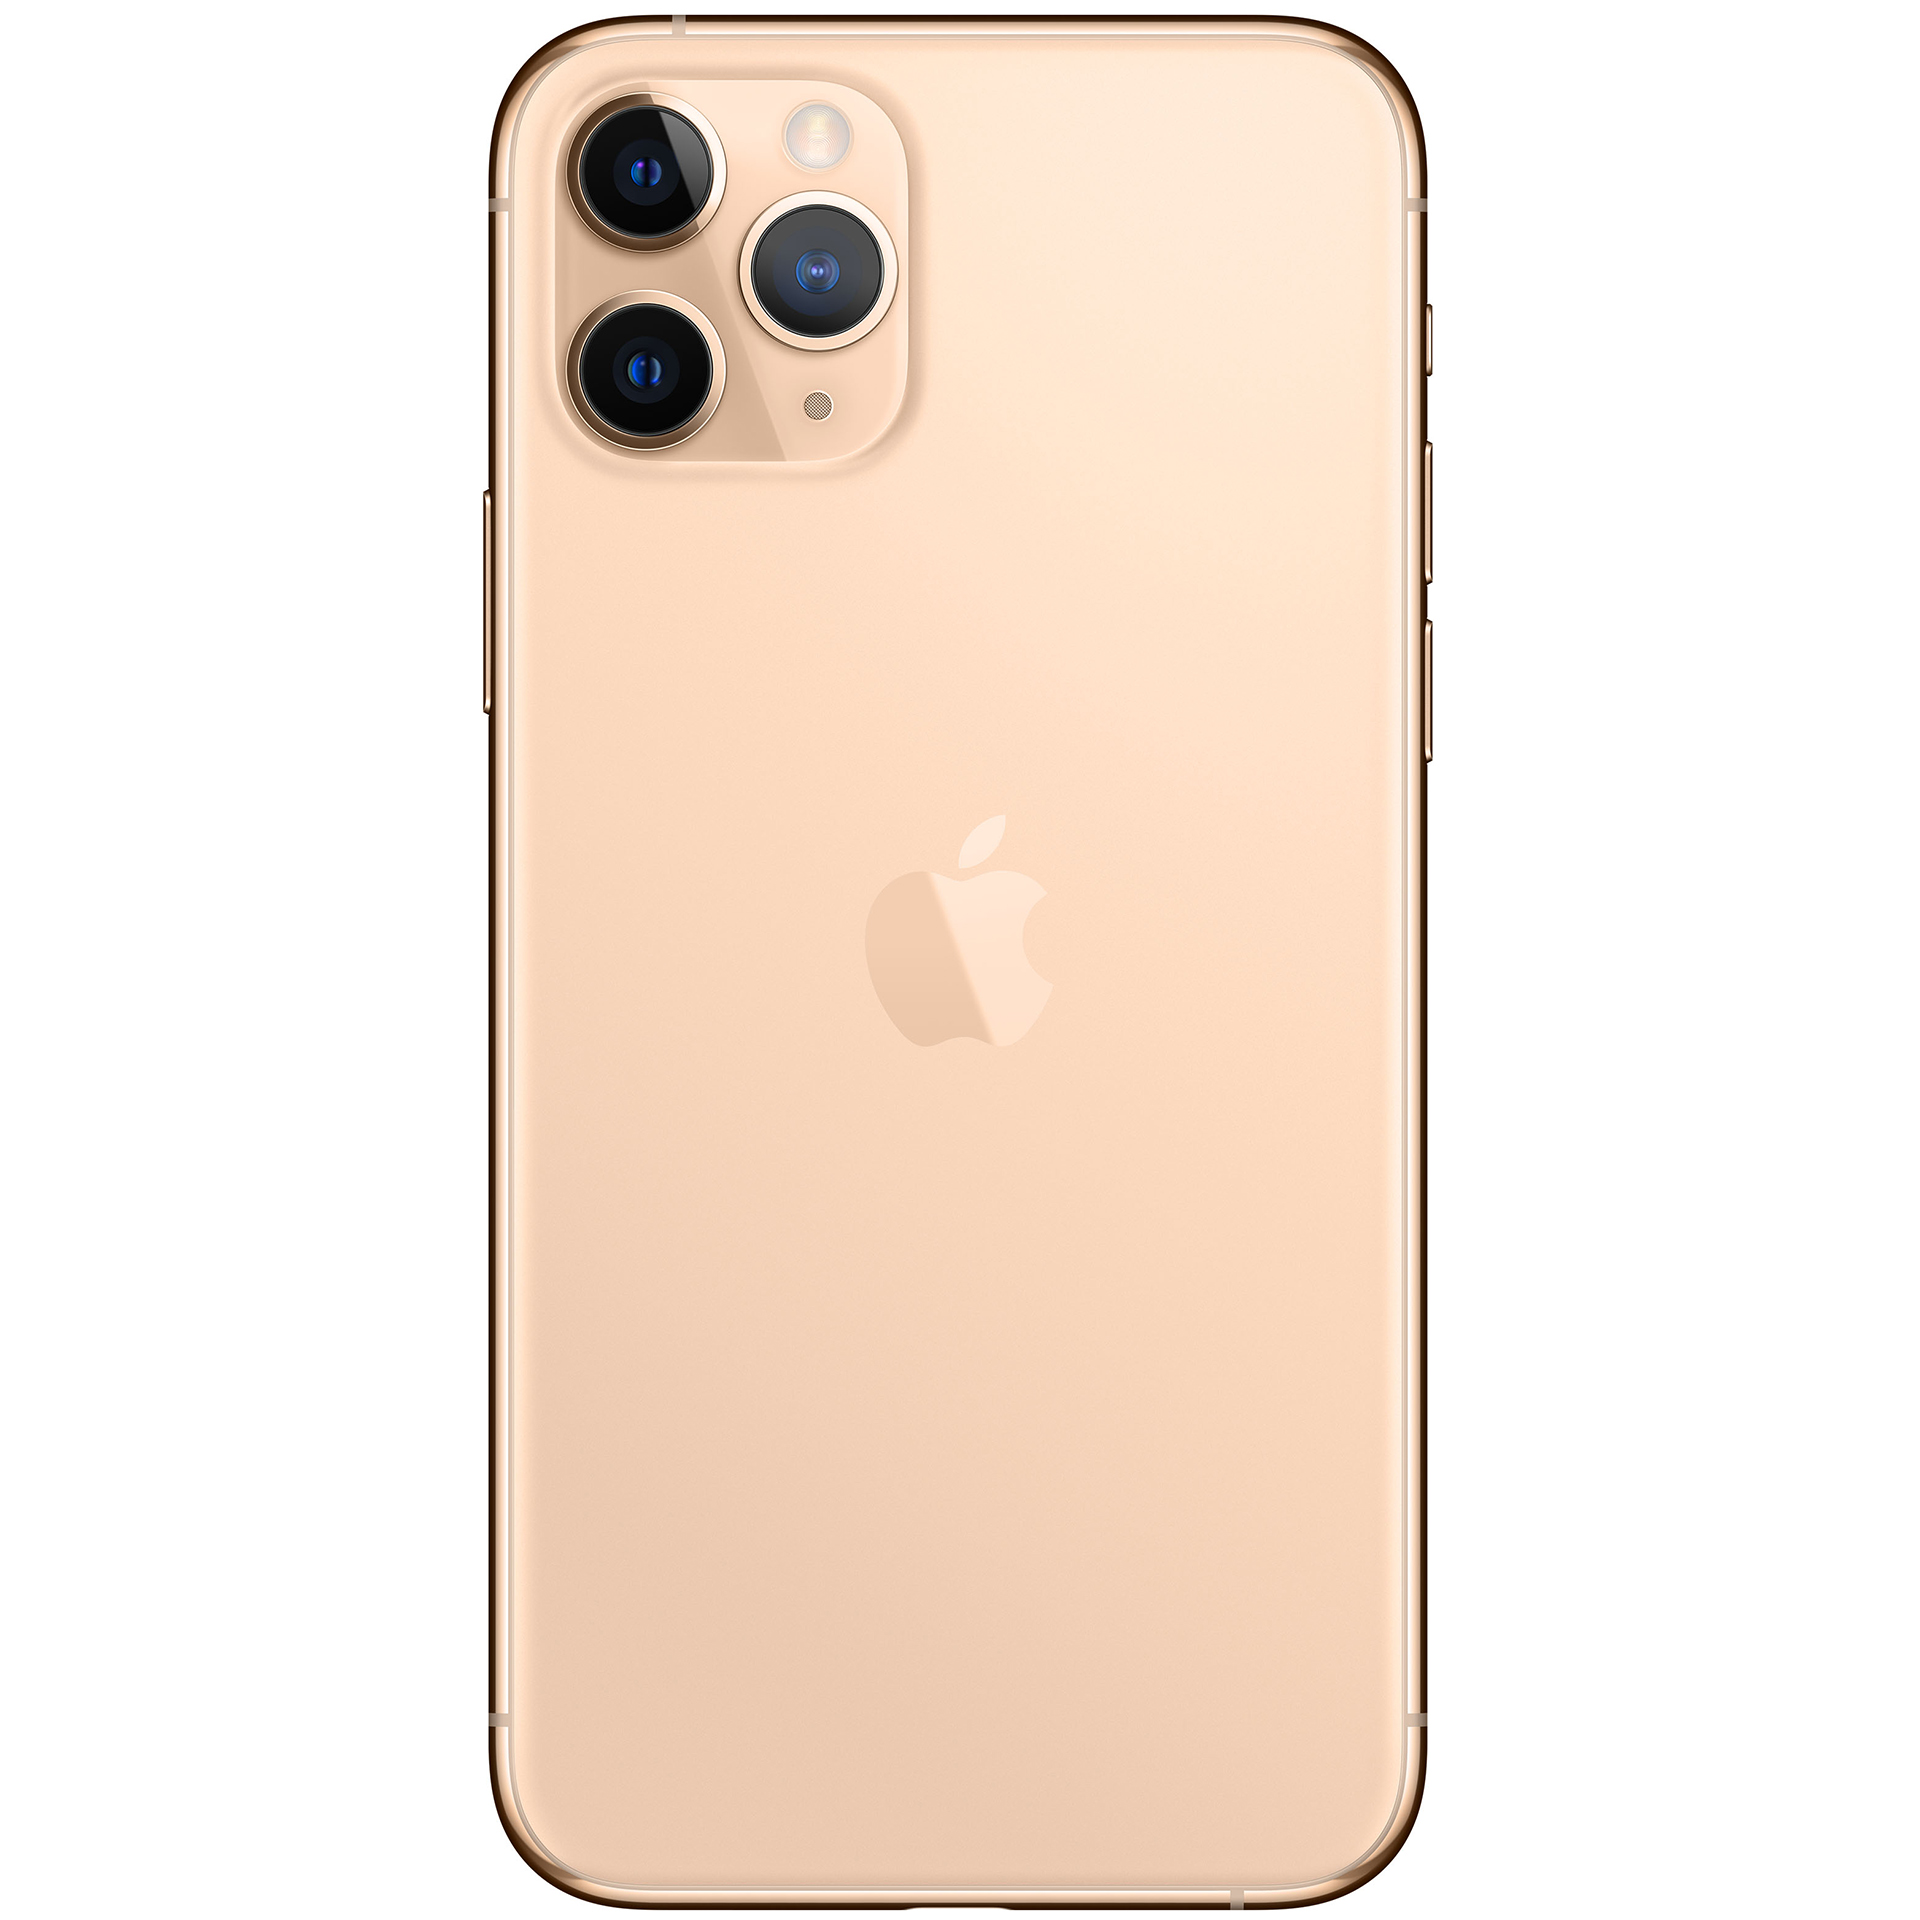 mobiiltelefon Apple iPhone 11 Pro 64 GB (kuldne)